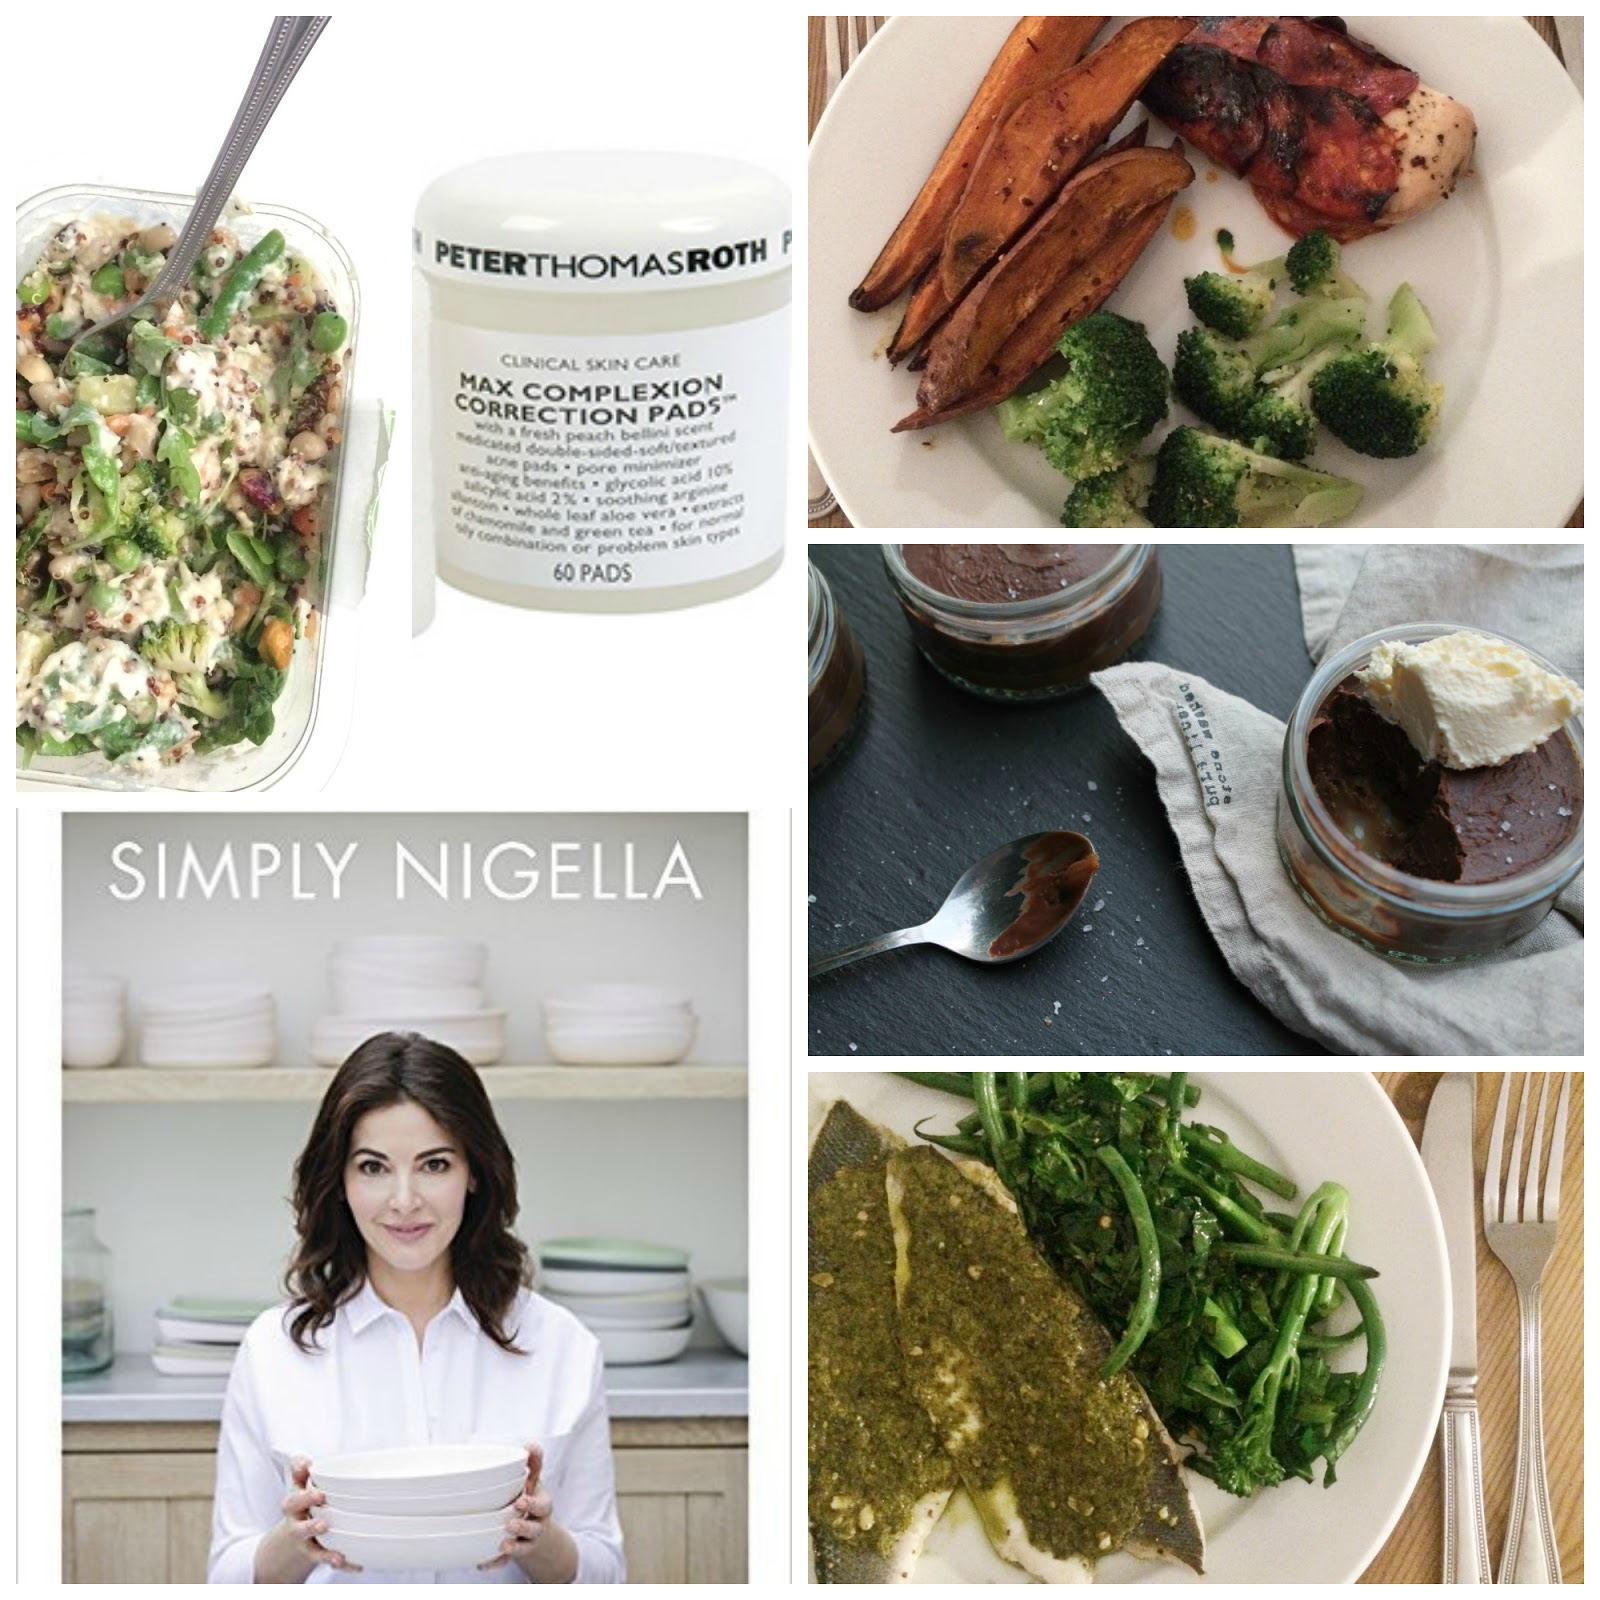 She's So Lucy Weekly Loves Peter Thomas Roth Mac Complexion Correction Review Simply Nigella Lawson Blue October Salted Caramel Chocolate Pots Recipe